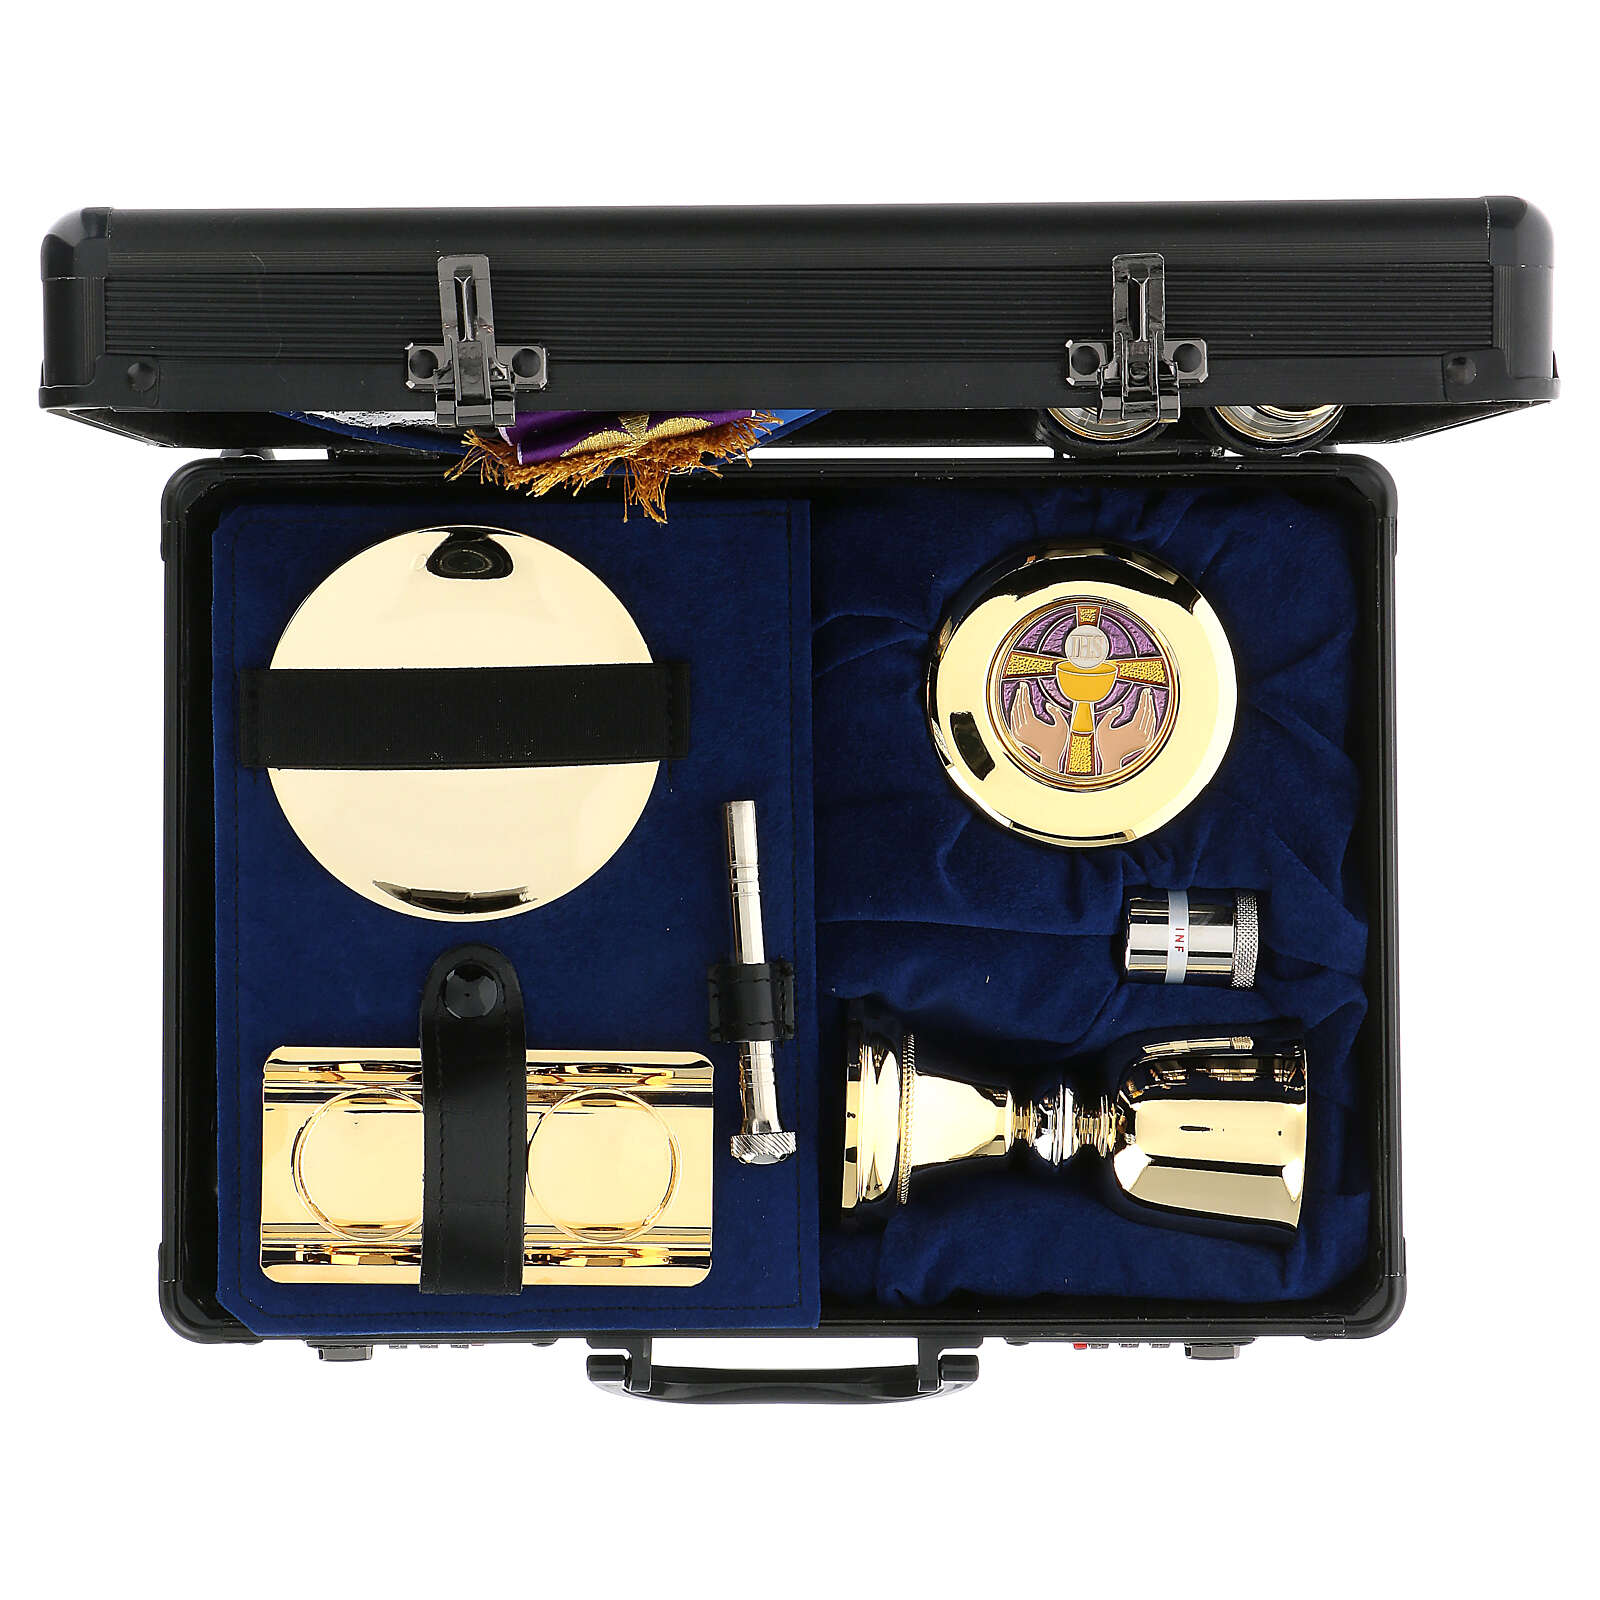 Mass kit case with amplifier 3